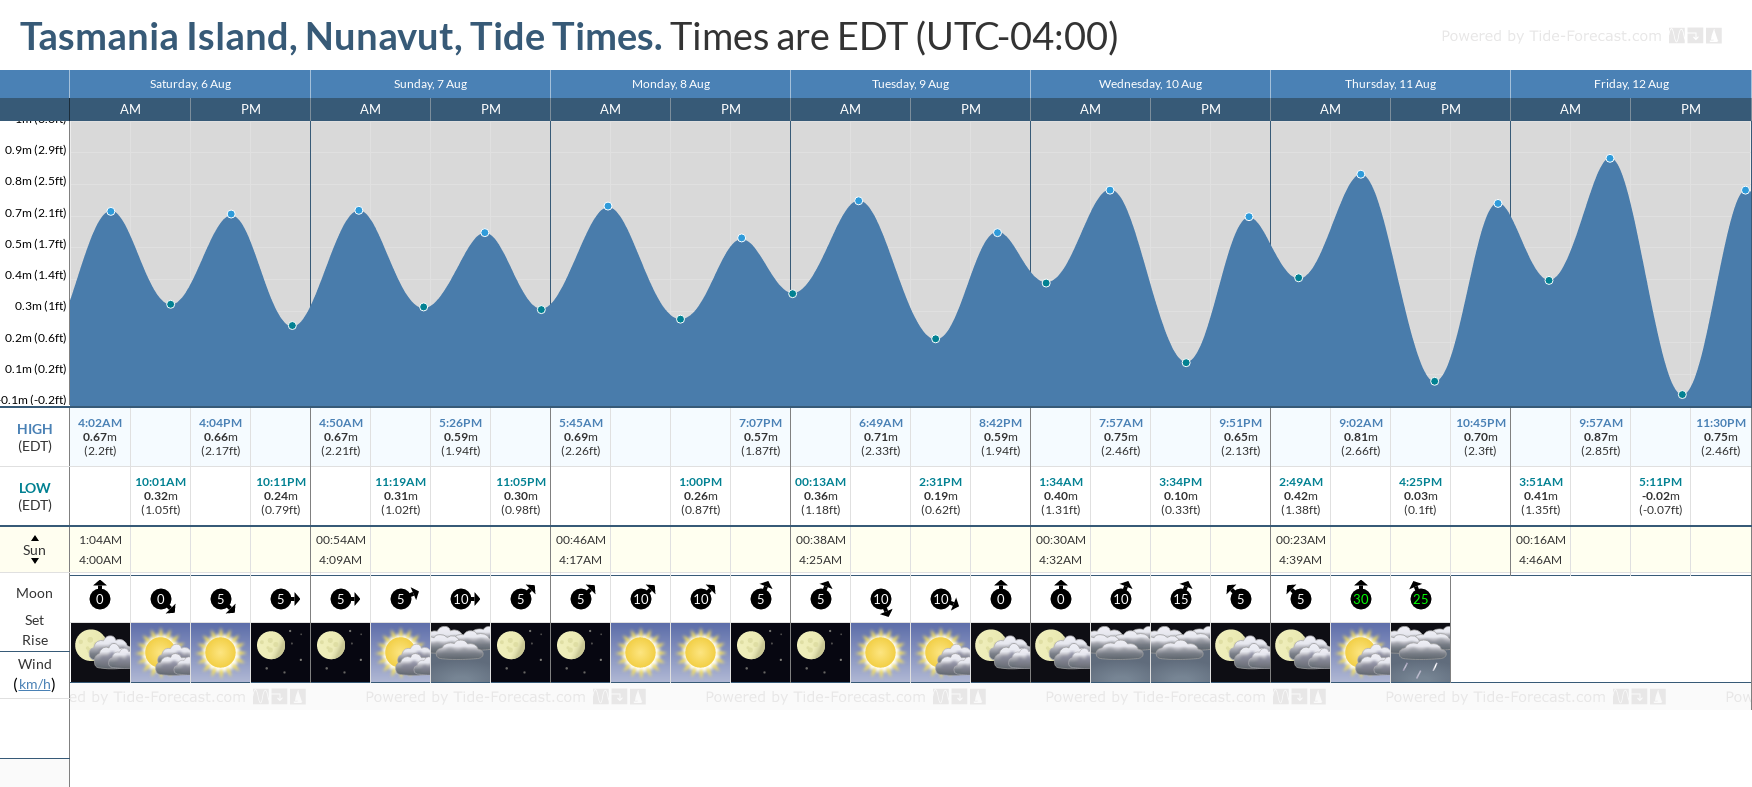 Tasmania Island, Nunavut Tide Chart including high and low tide tide times for the next 7 days